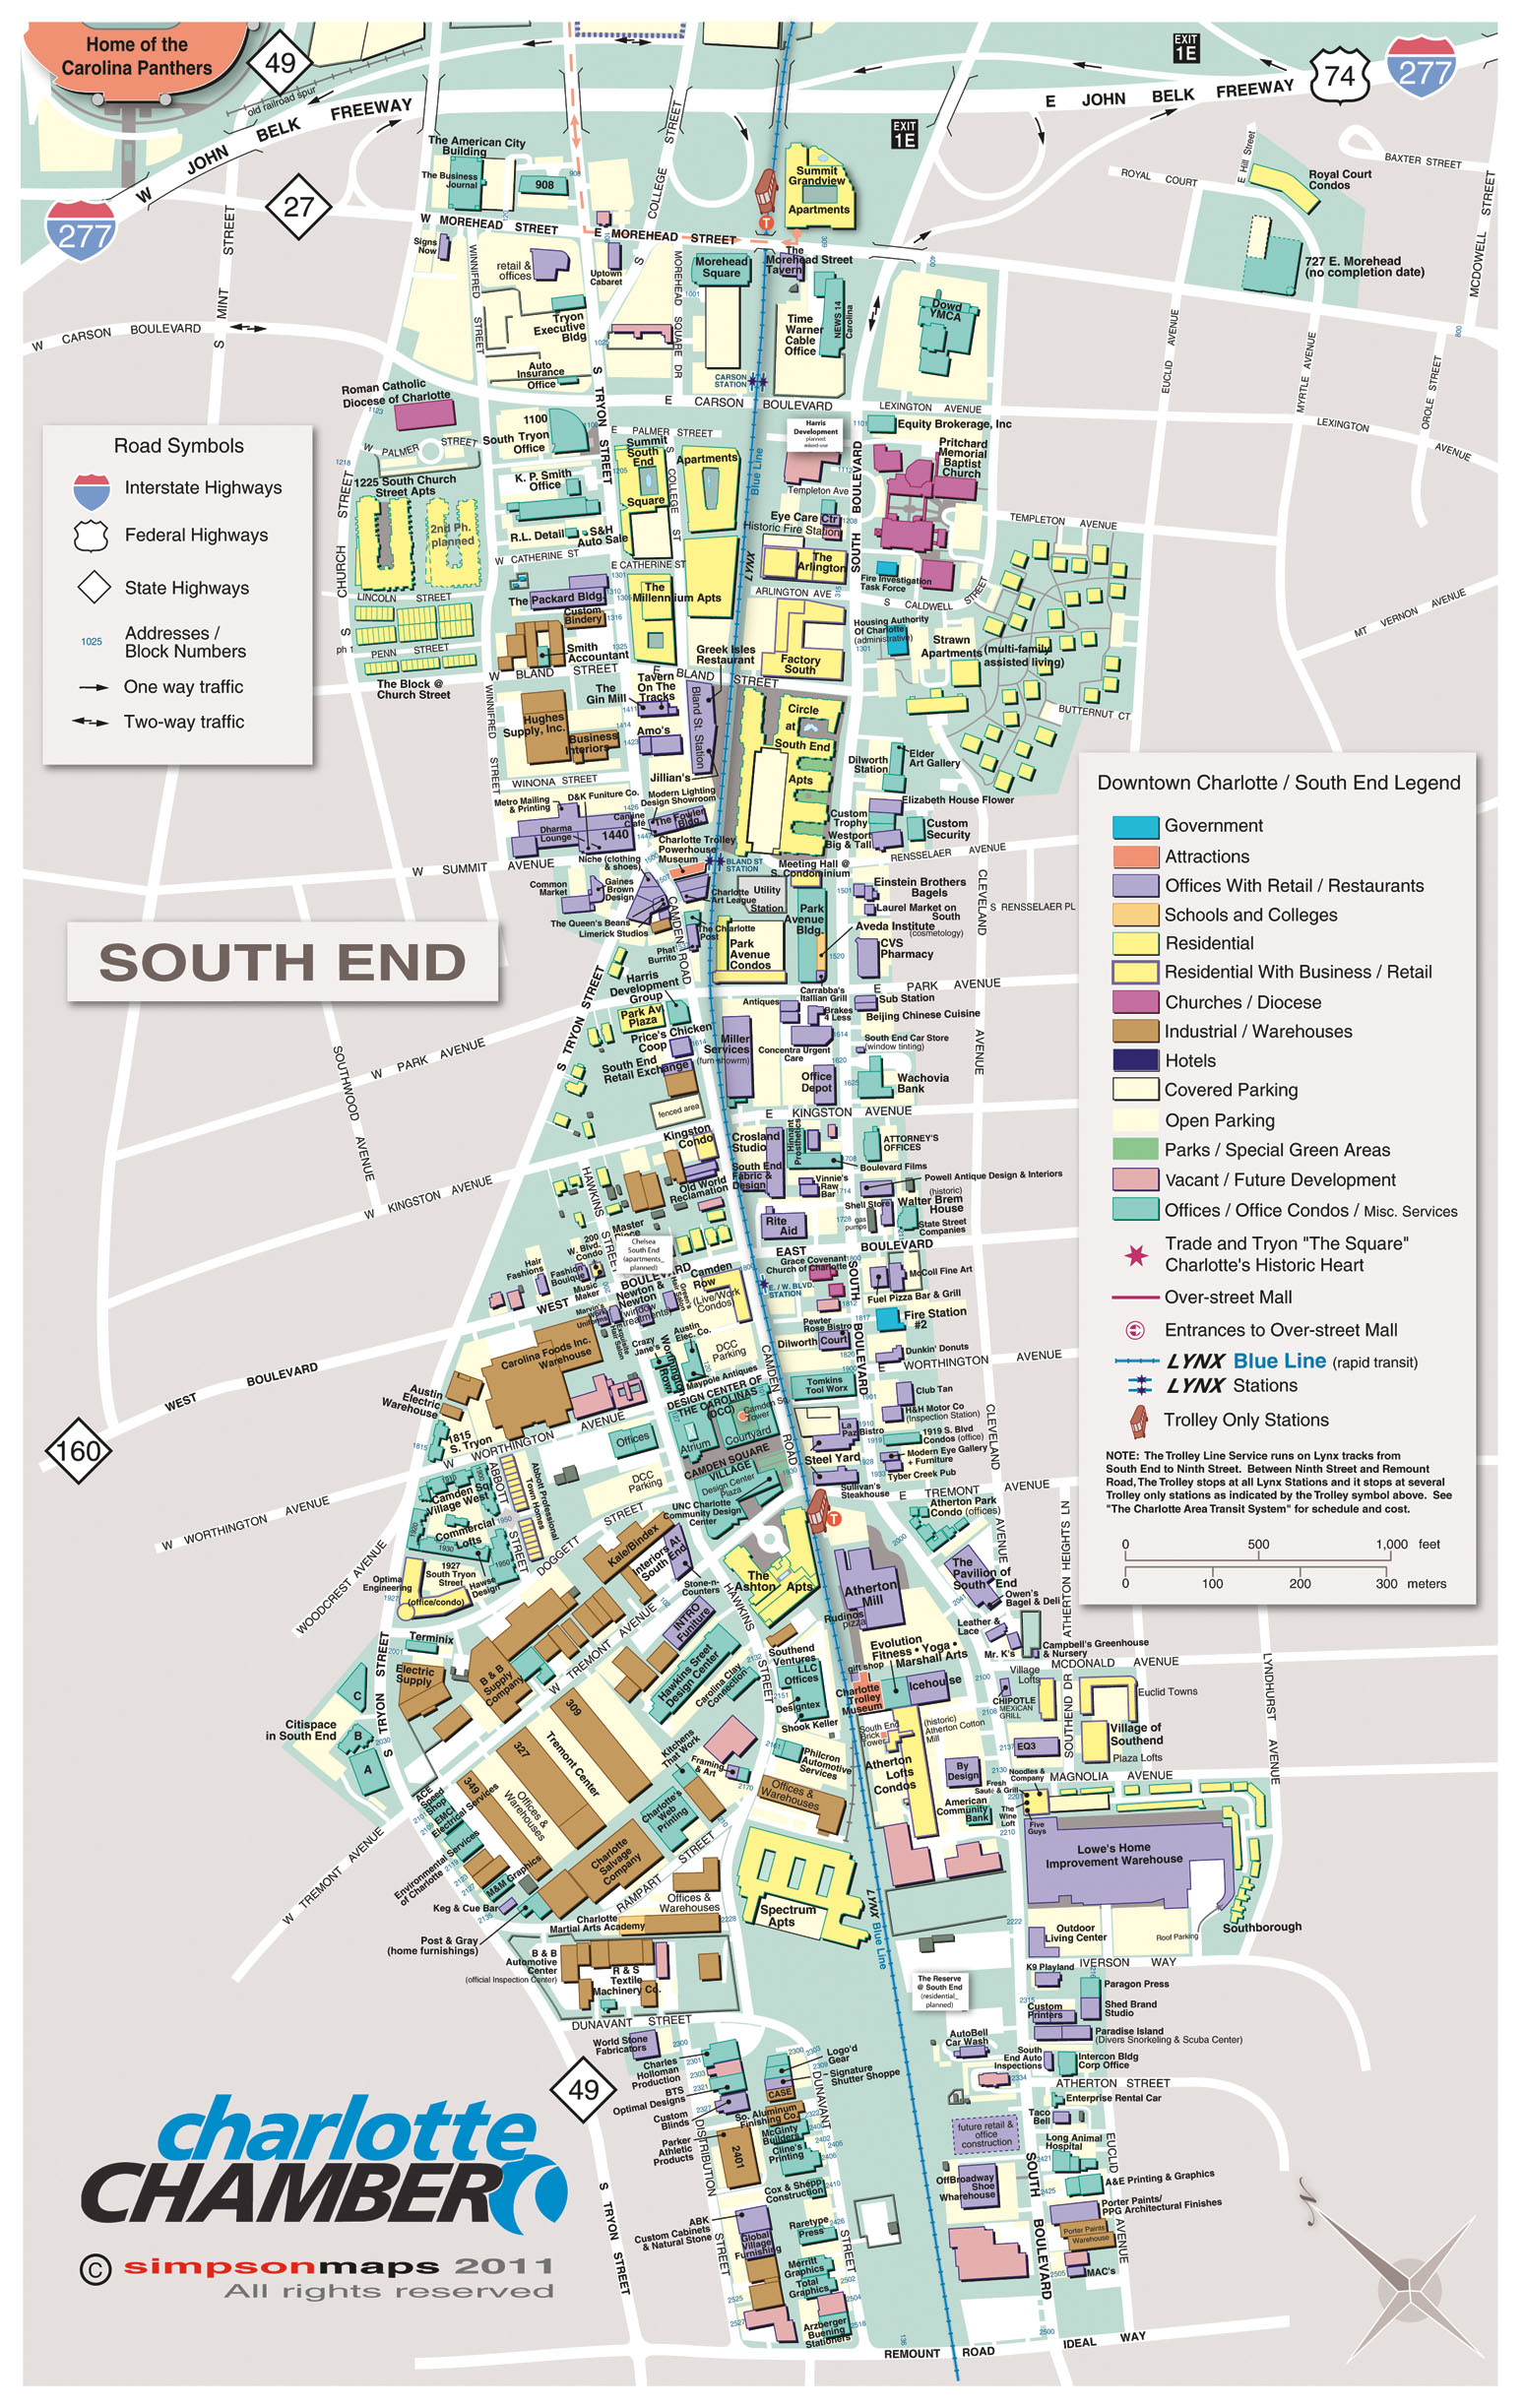 Maps - Charlotte Chamber Charlotte Area Map on